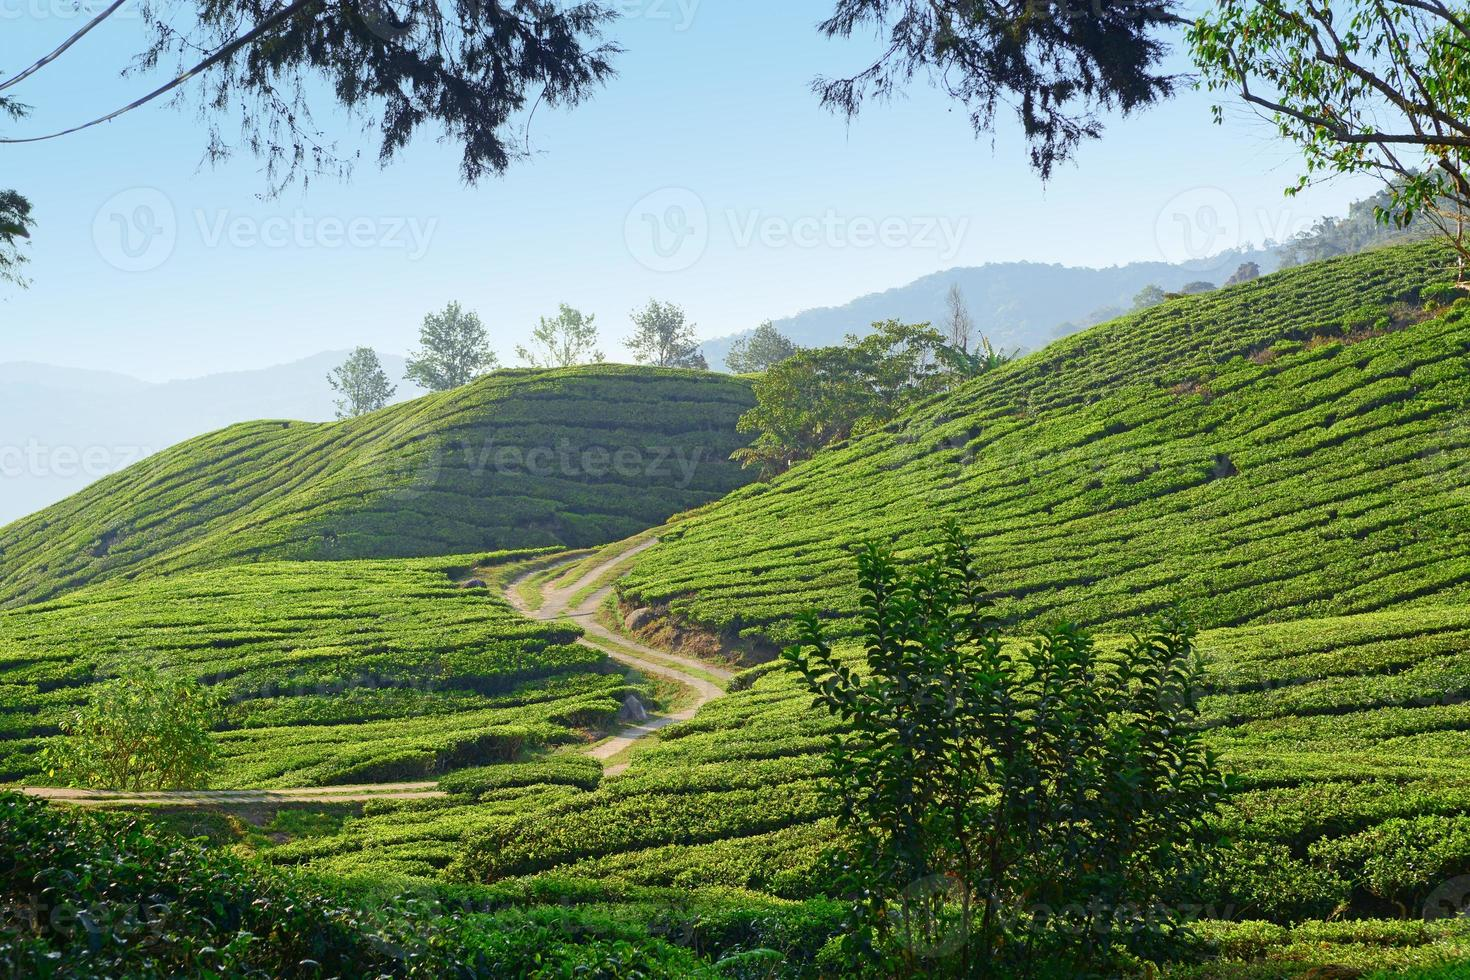 Cameron Highlands tea plantation photo